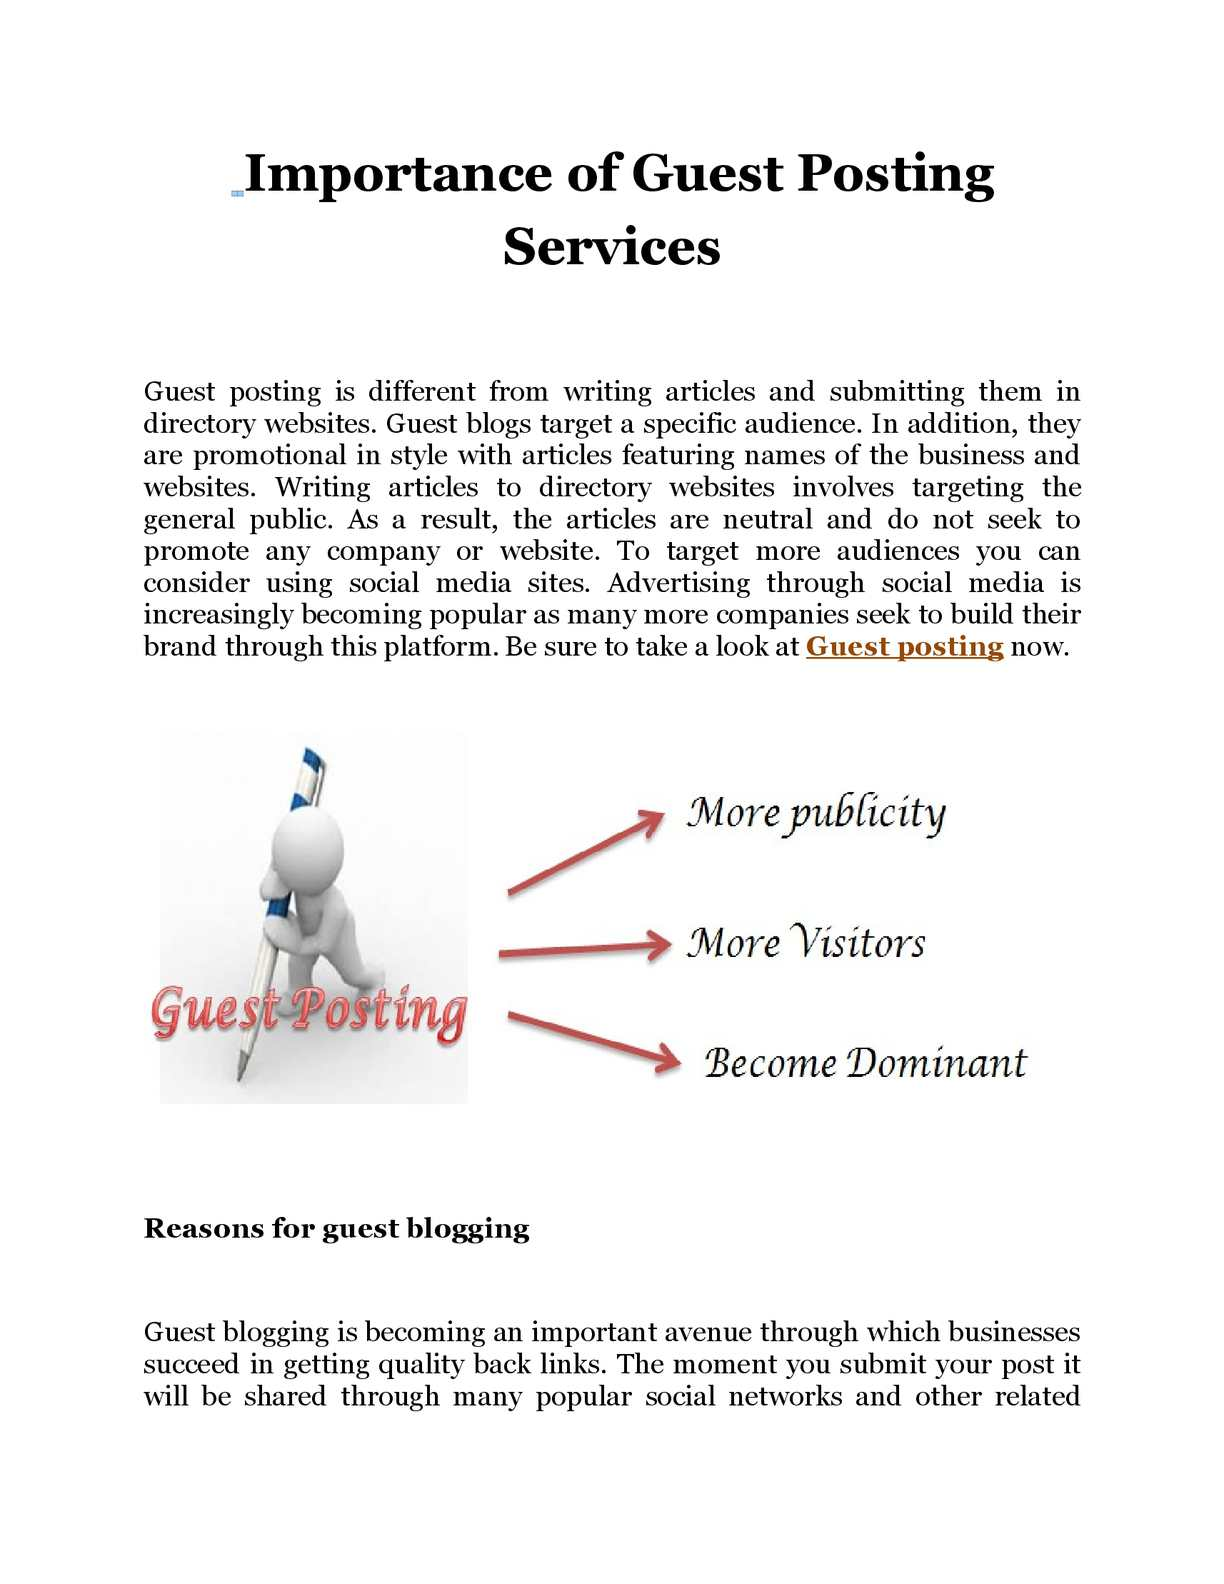 Calaméo - Importance of Guest Posting Services